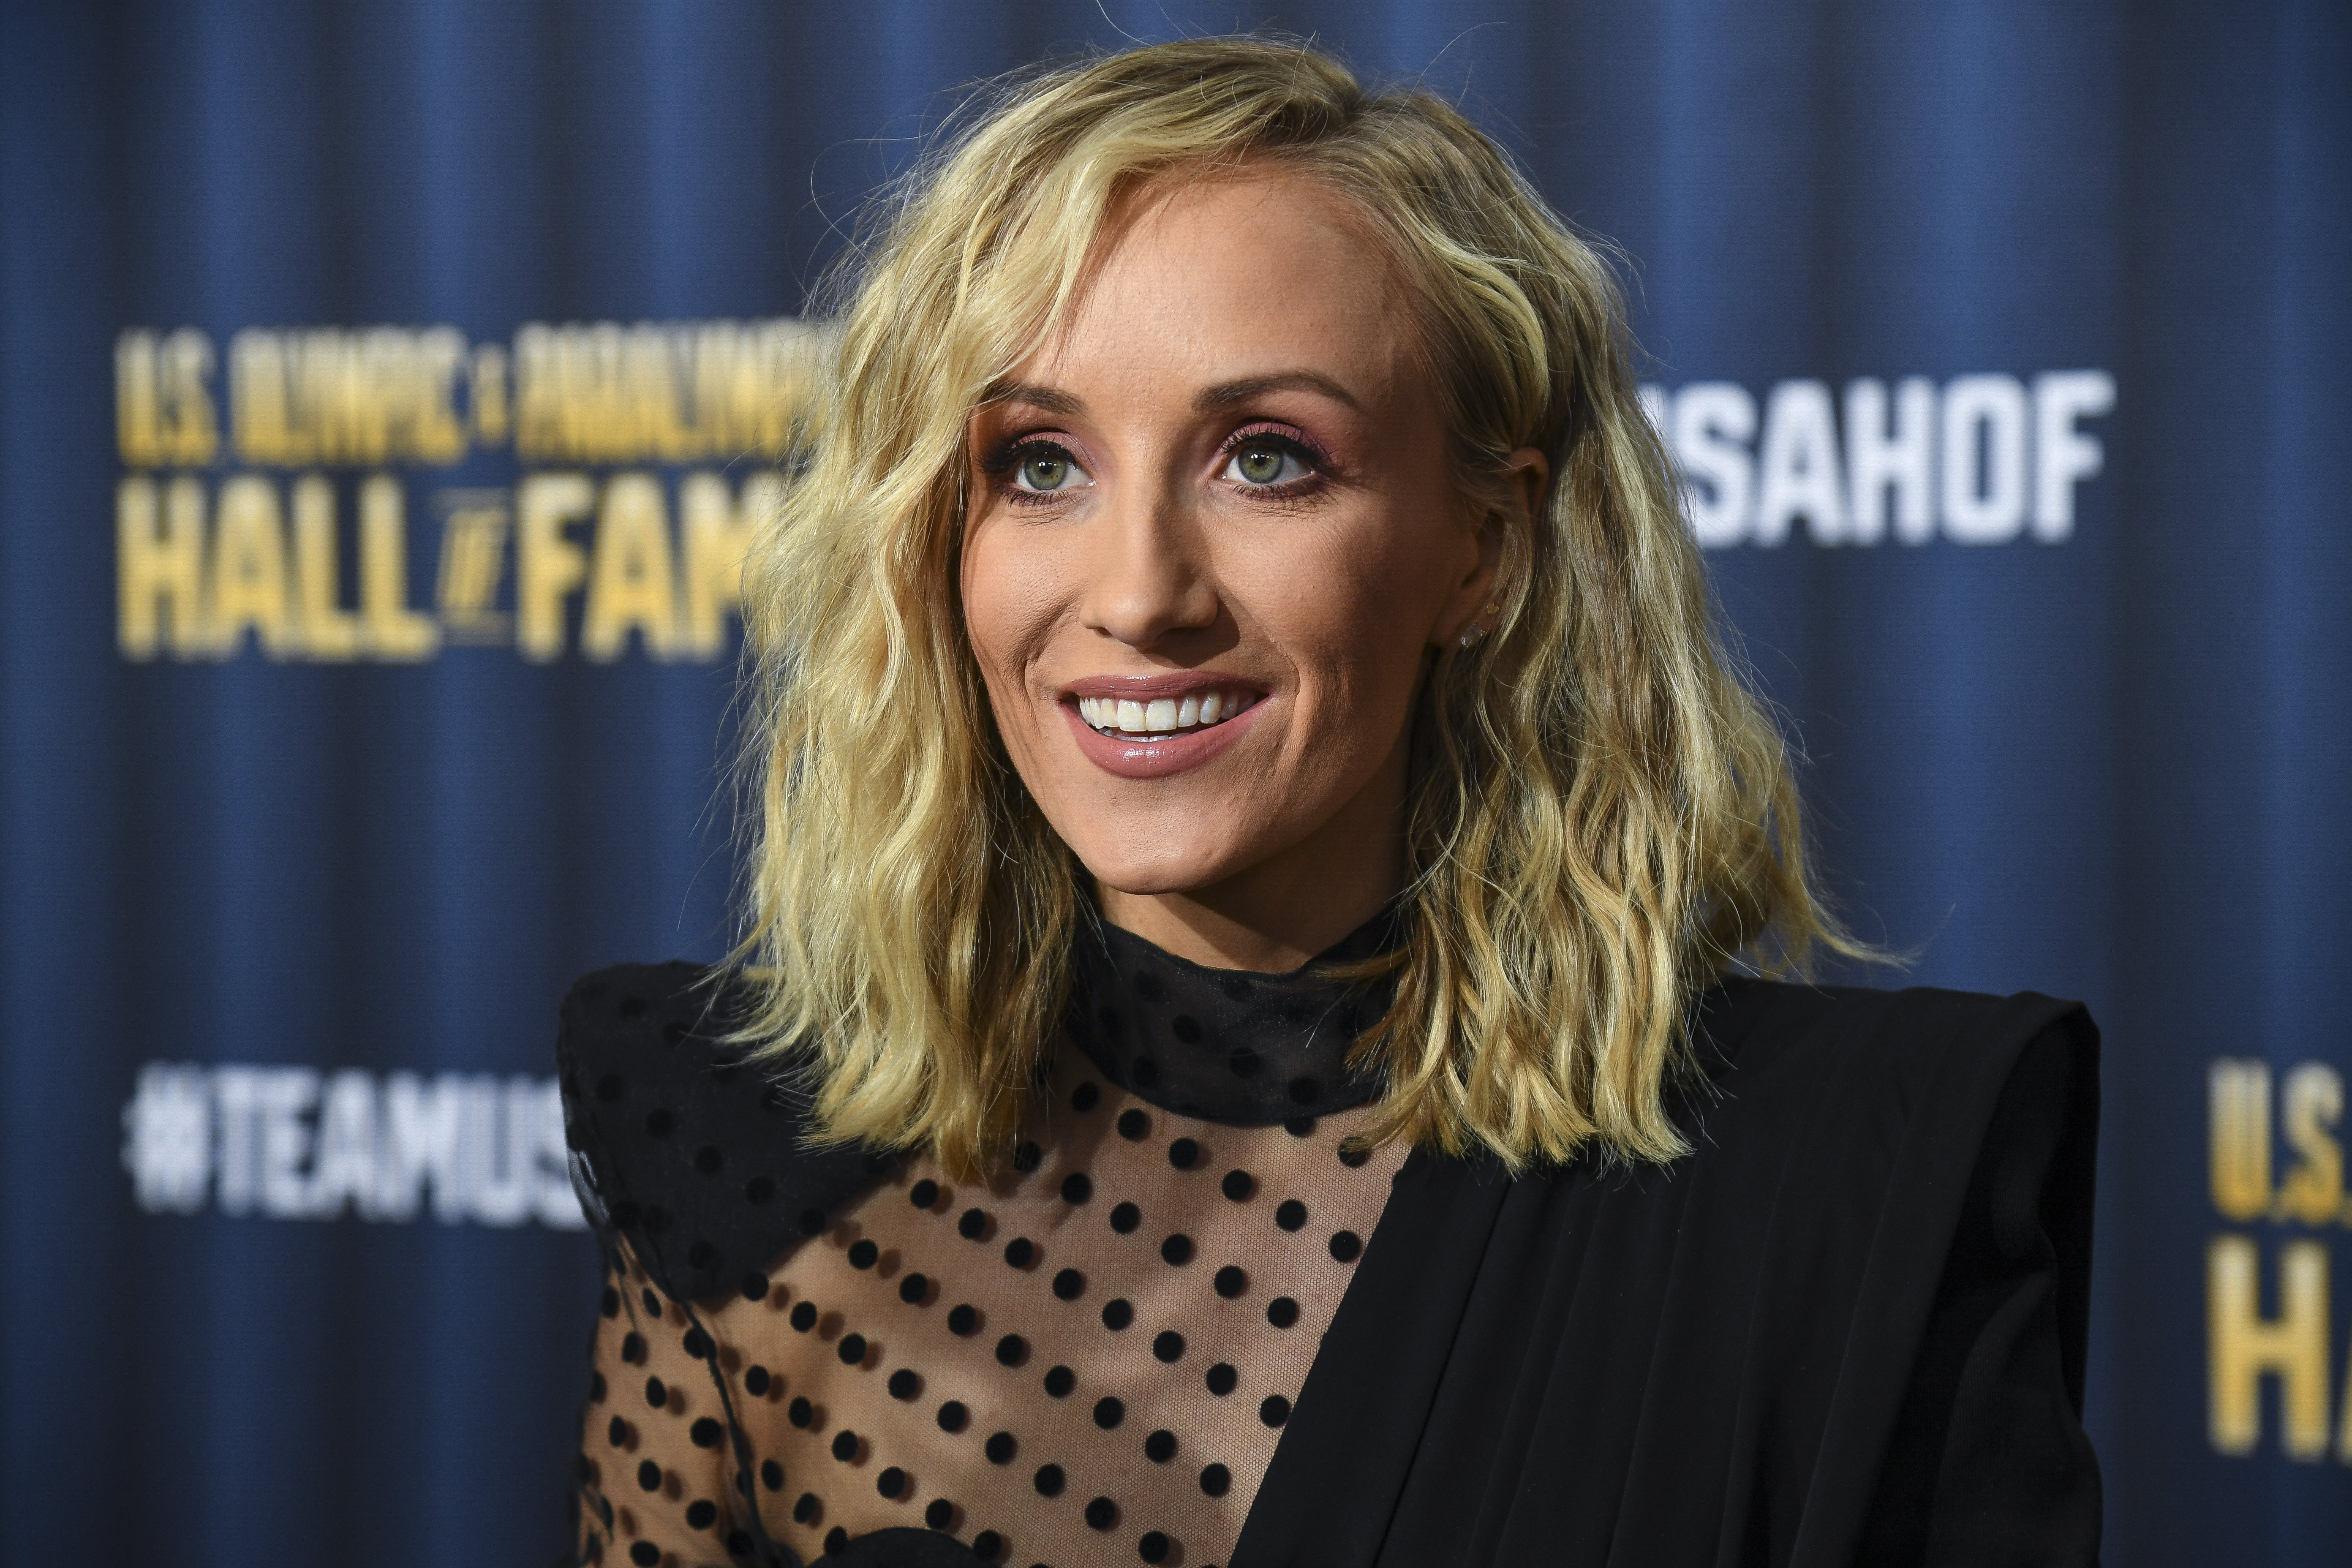 Nastia Liukin at the U.S. Olympic Hall of Fame Class of 2019 Induction Ceremony.| Photo: Getty Images